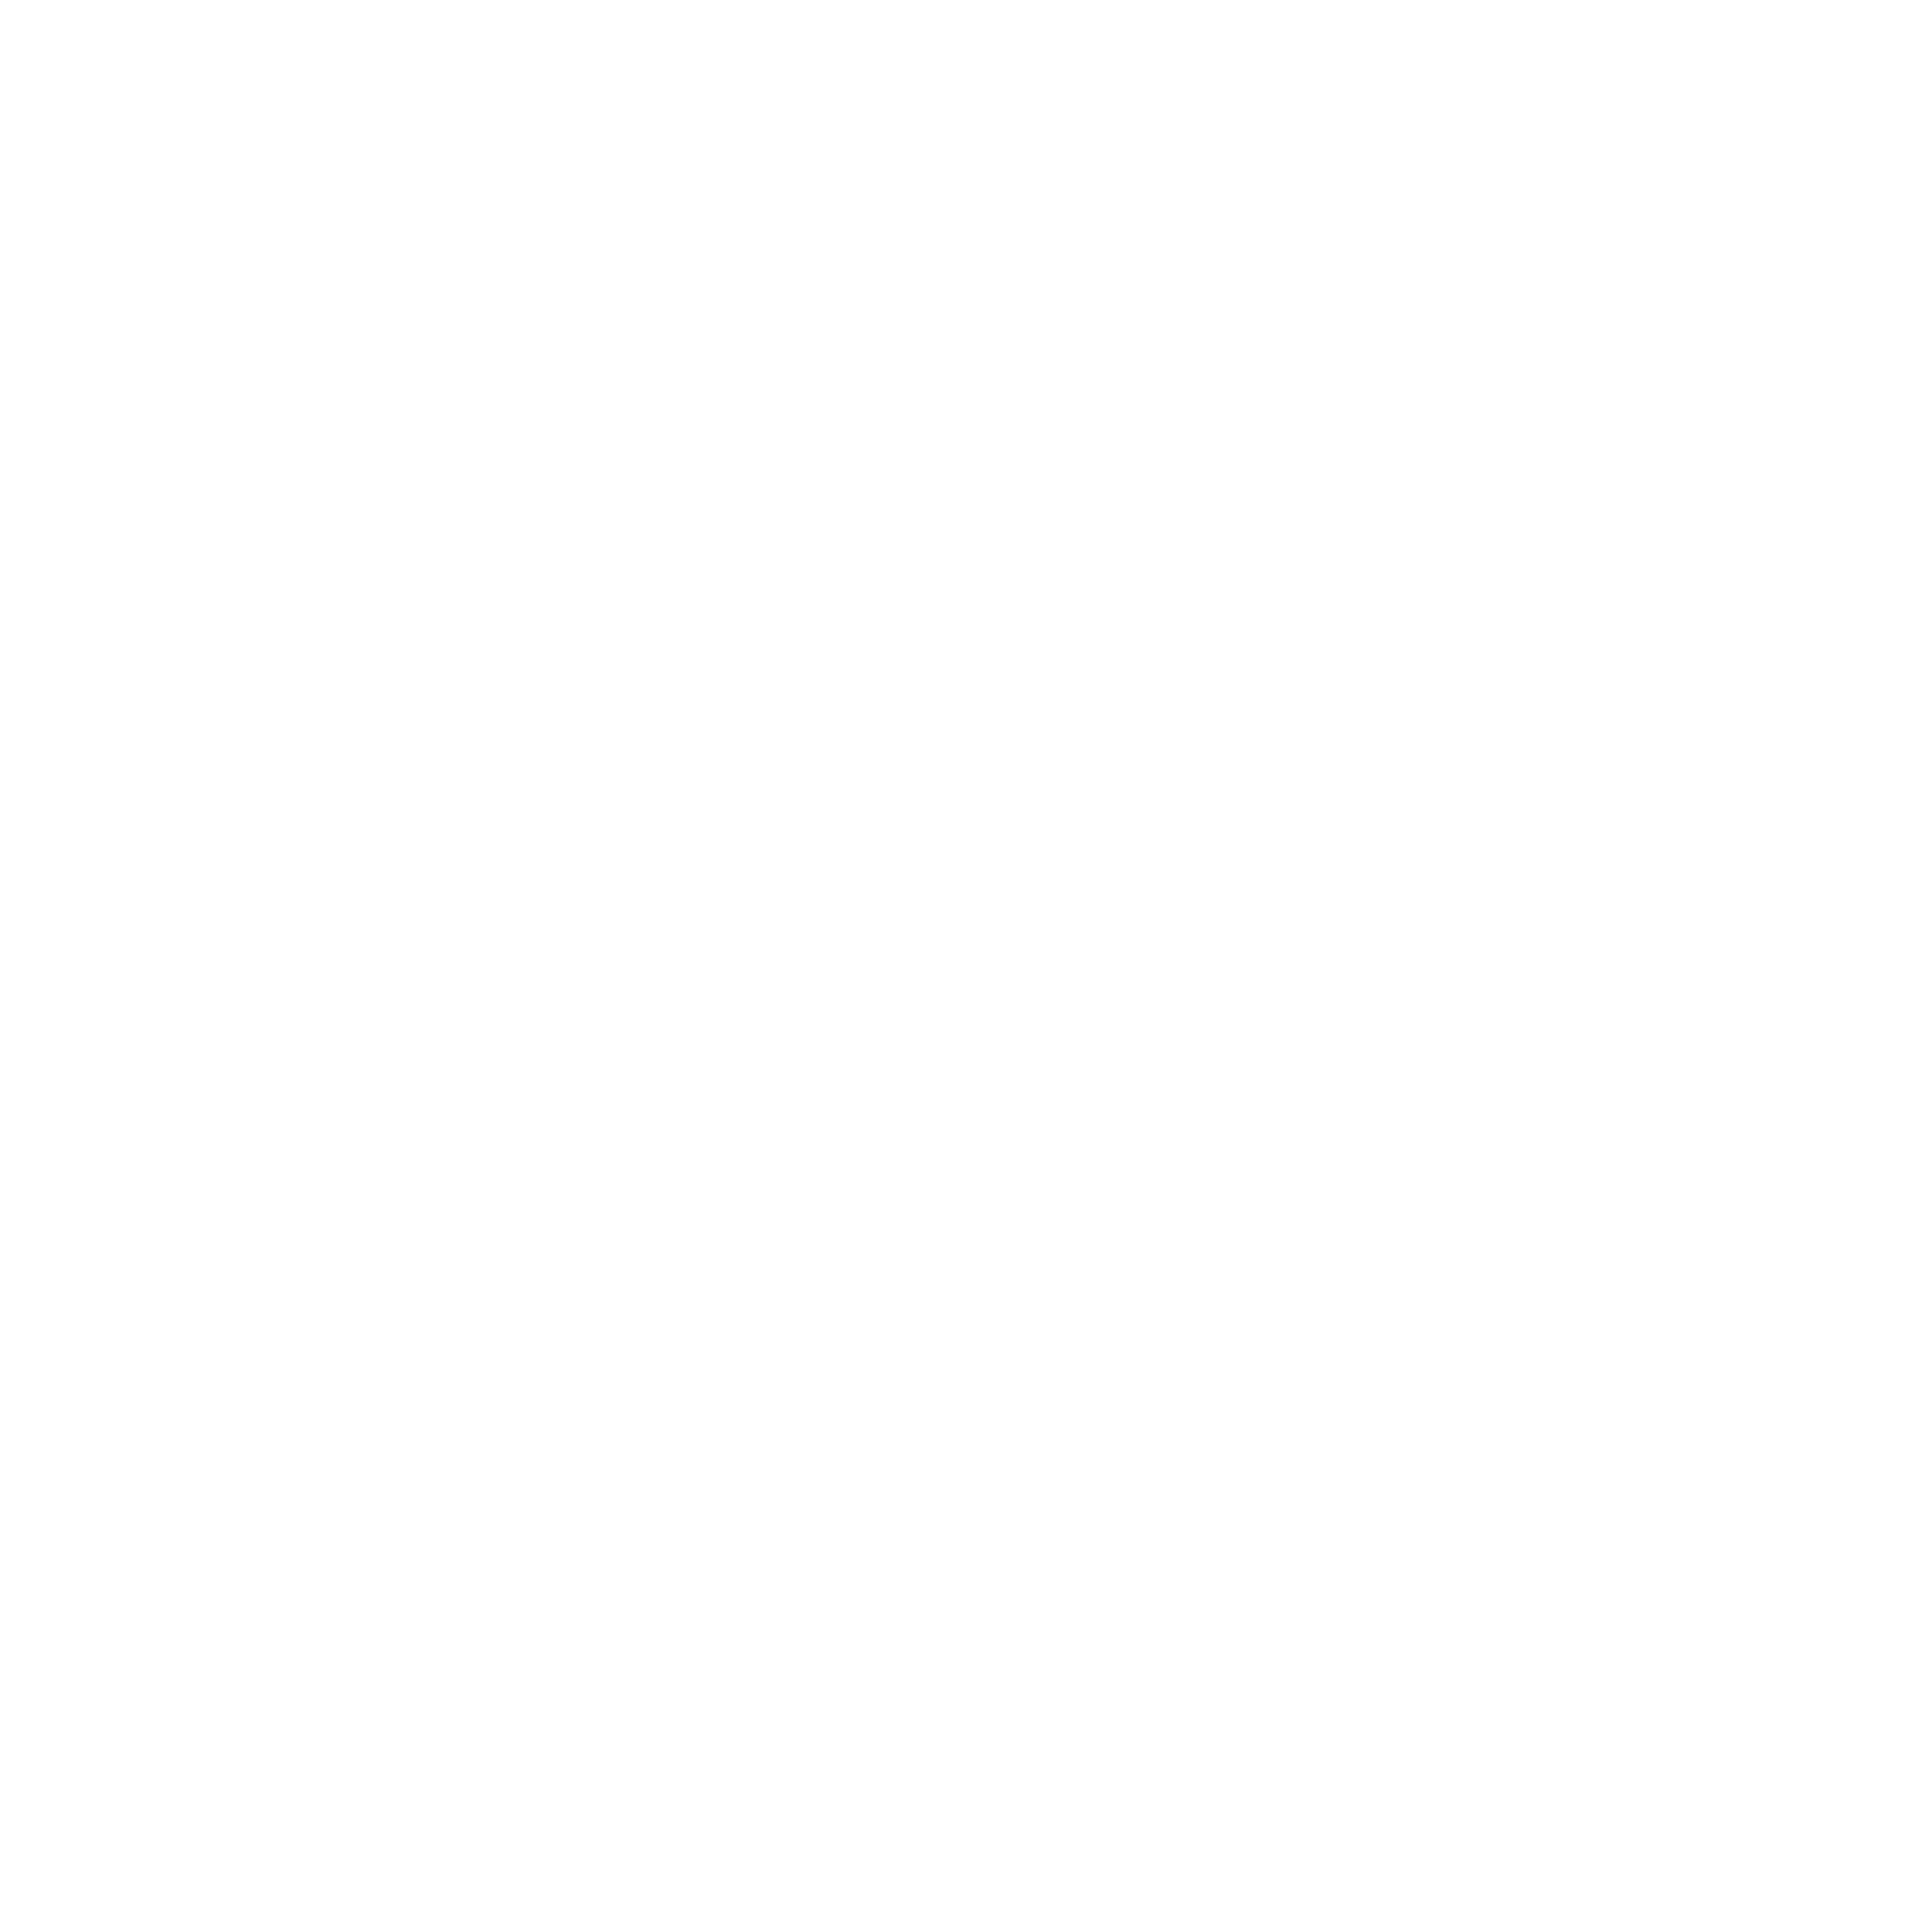 JEEP-1.png